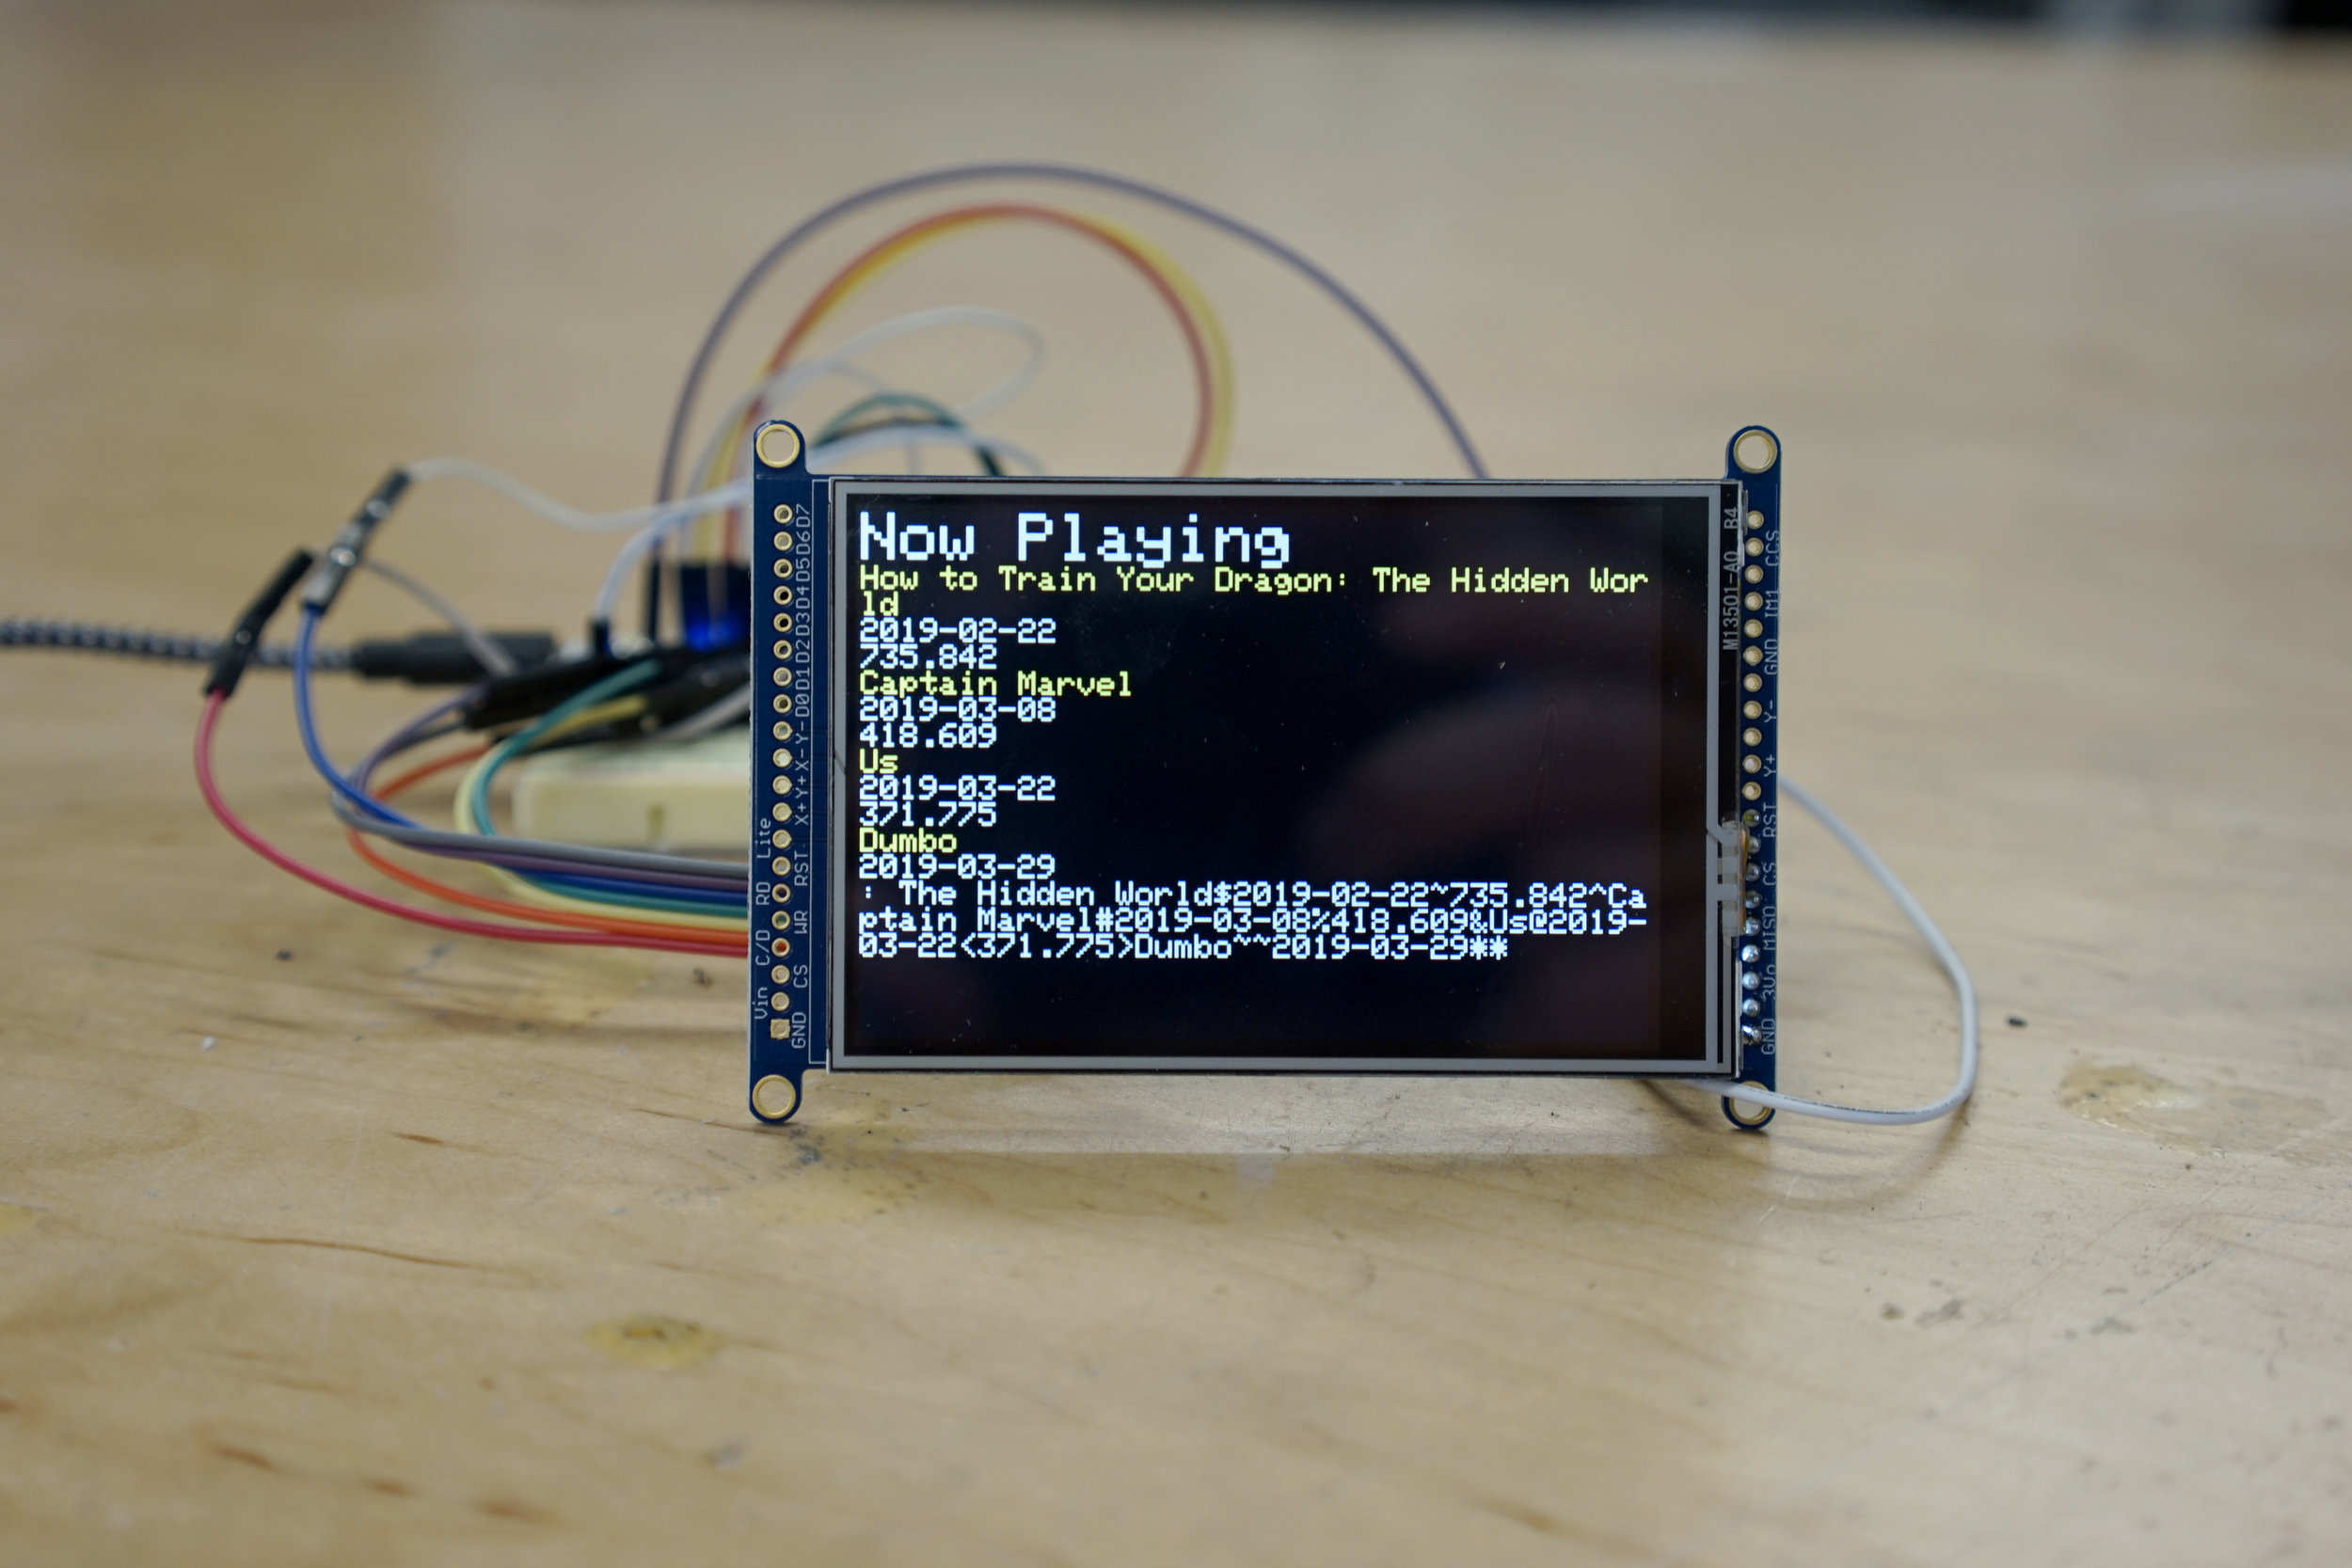 Here is a pair of display-based IOT projects. The one above uses an API to display local movies and average audience review scores. The one below gives bus times and utilizes a funny ASCII representation of a Muni bus.